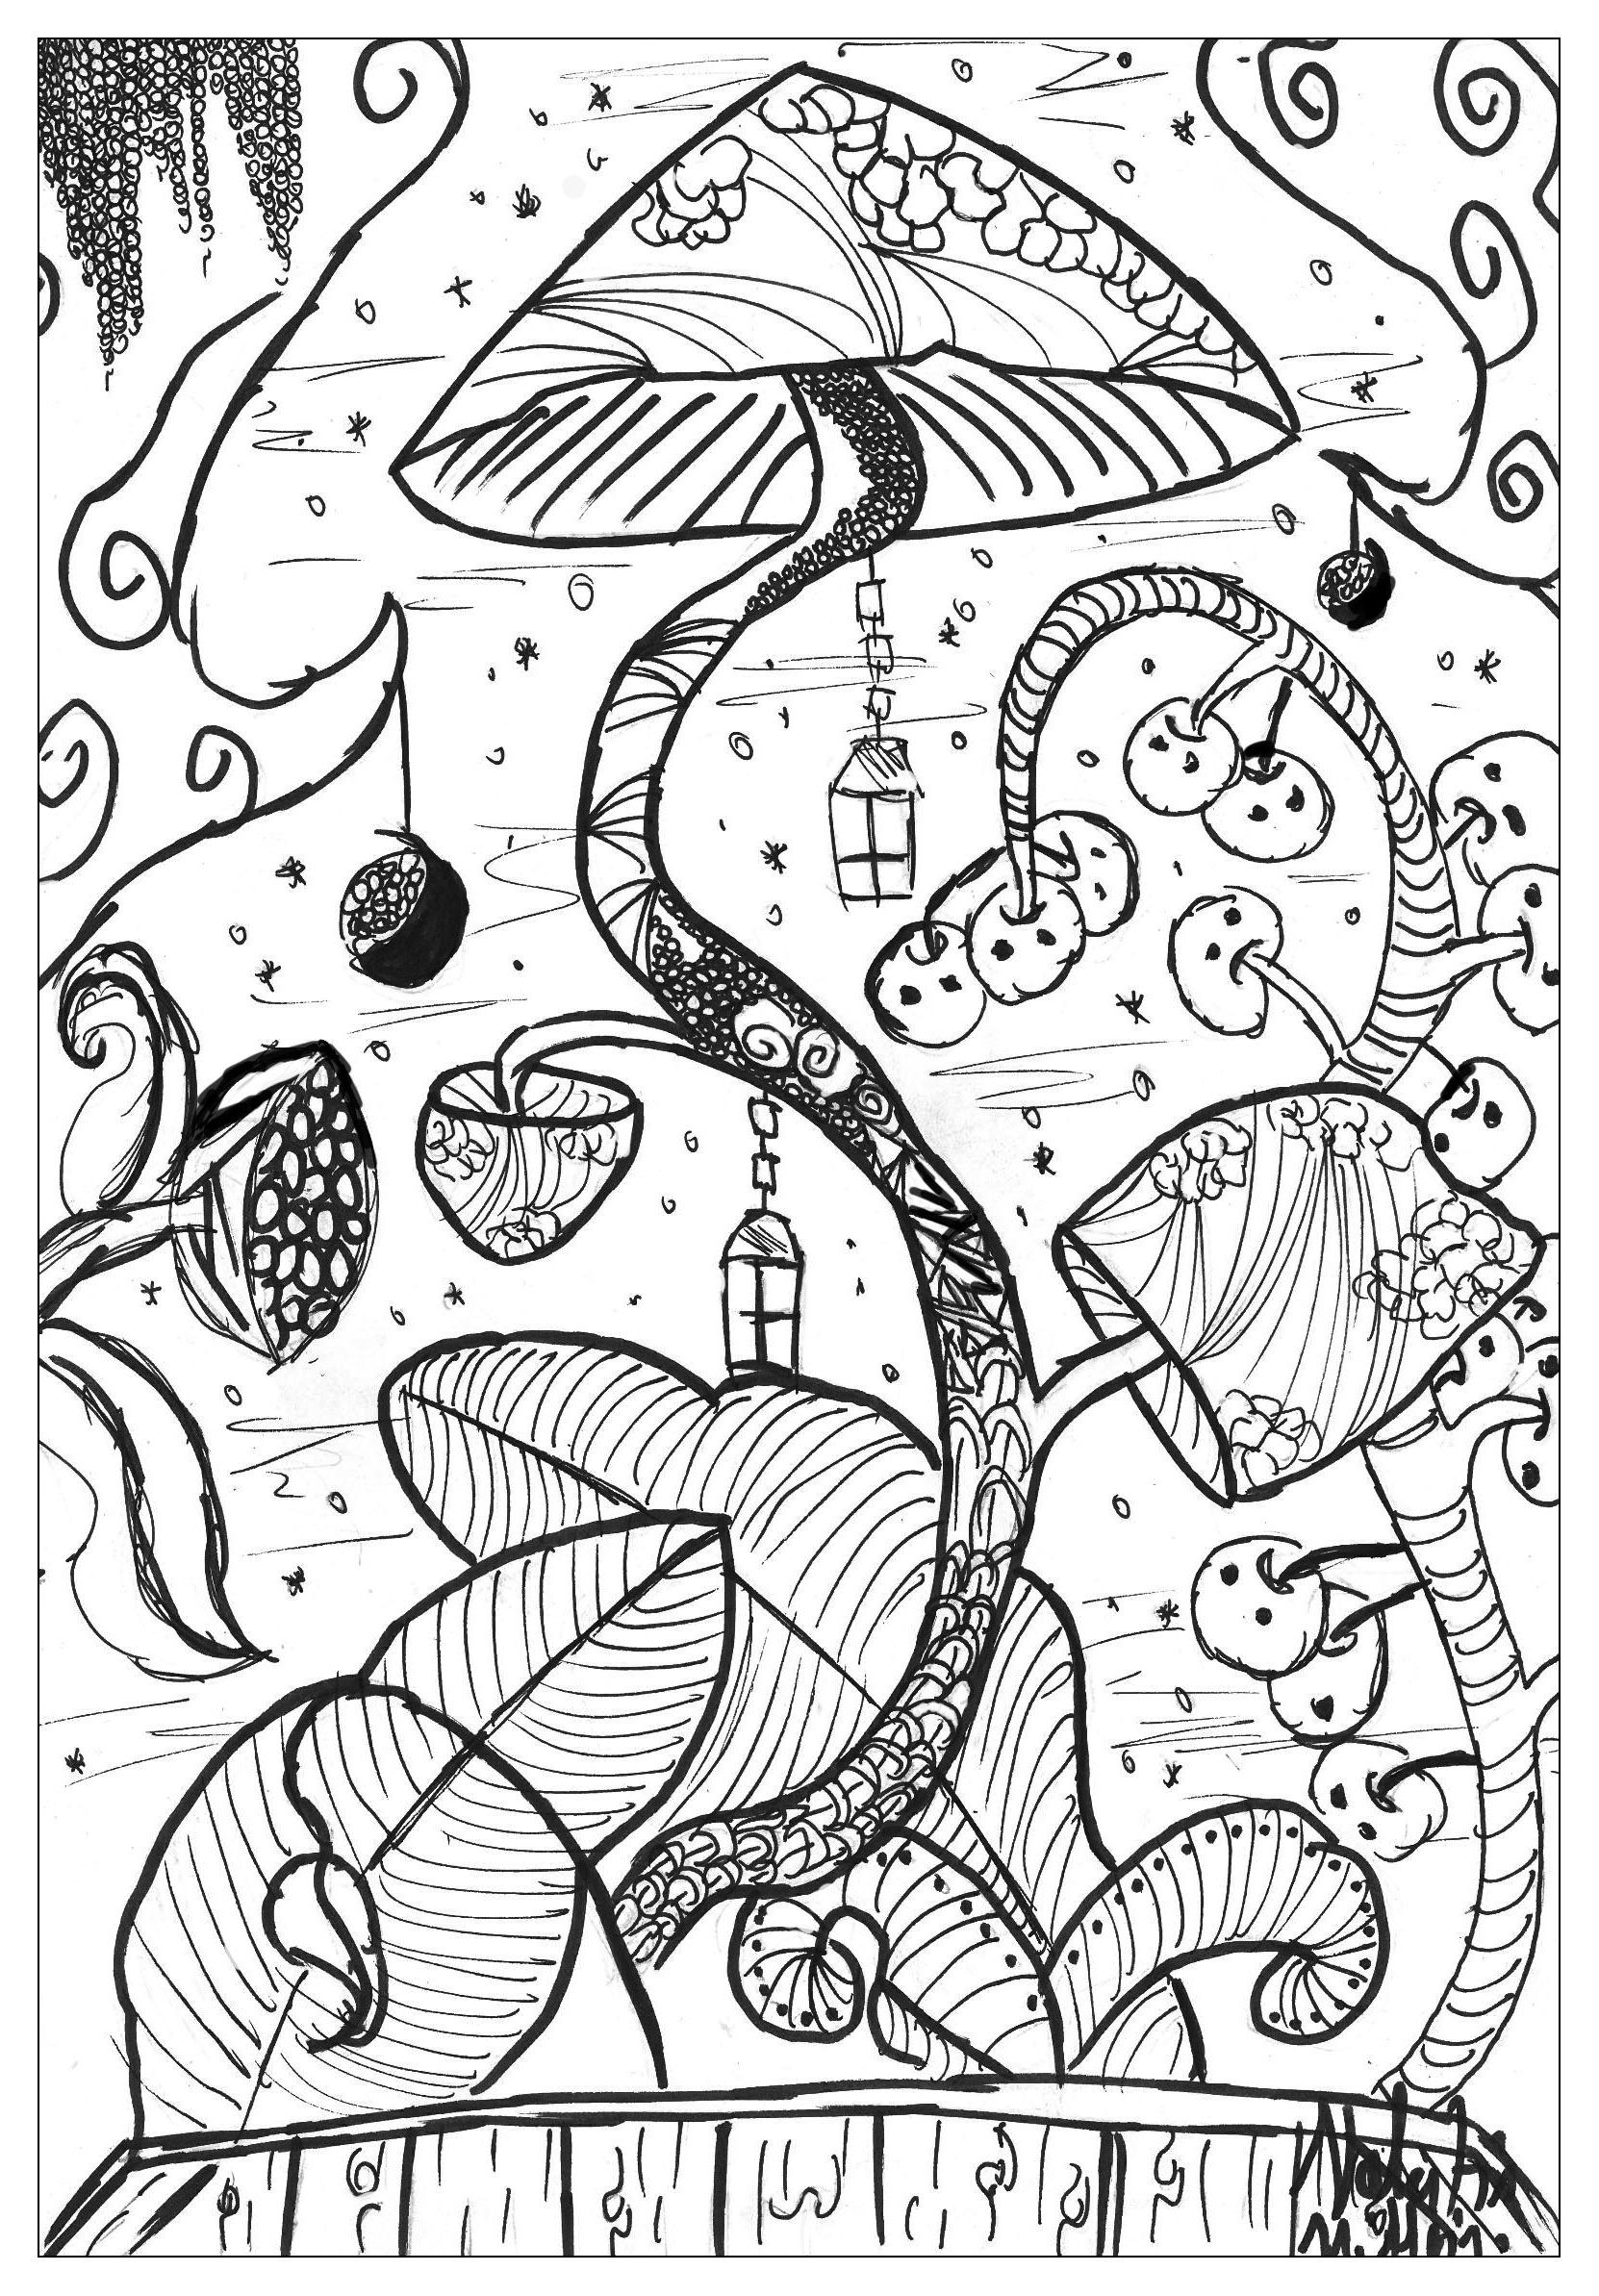 15 images of trippy coloring pageserfly full size abstract - Trippy Coloring Book Pages